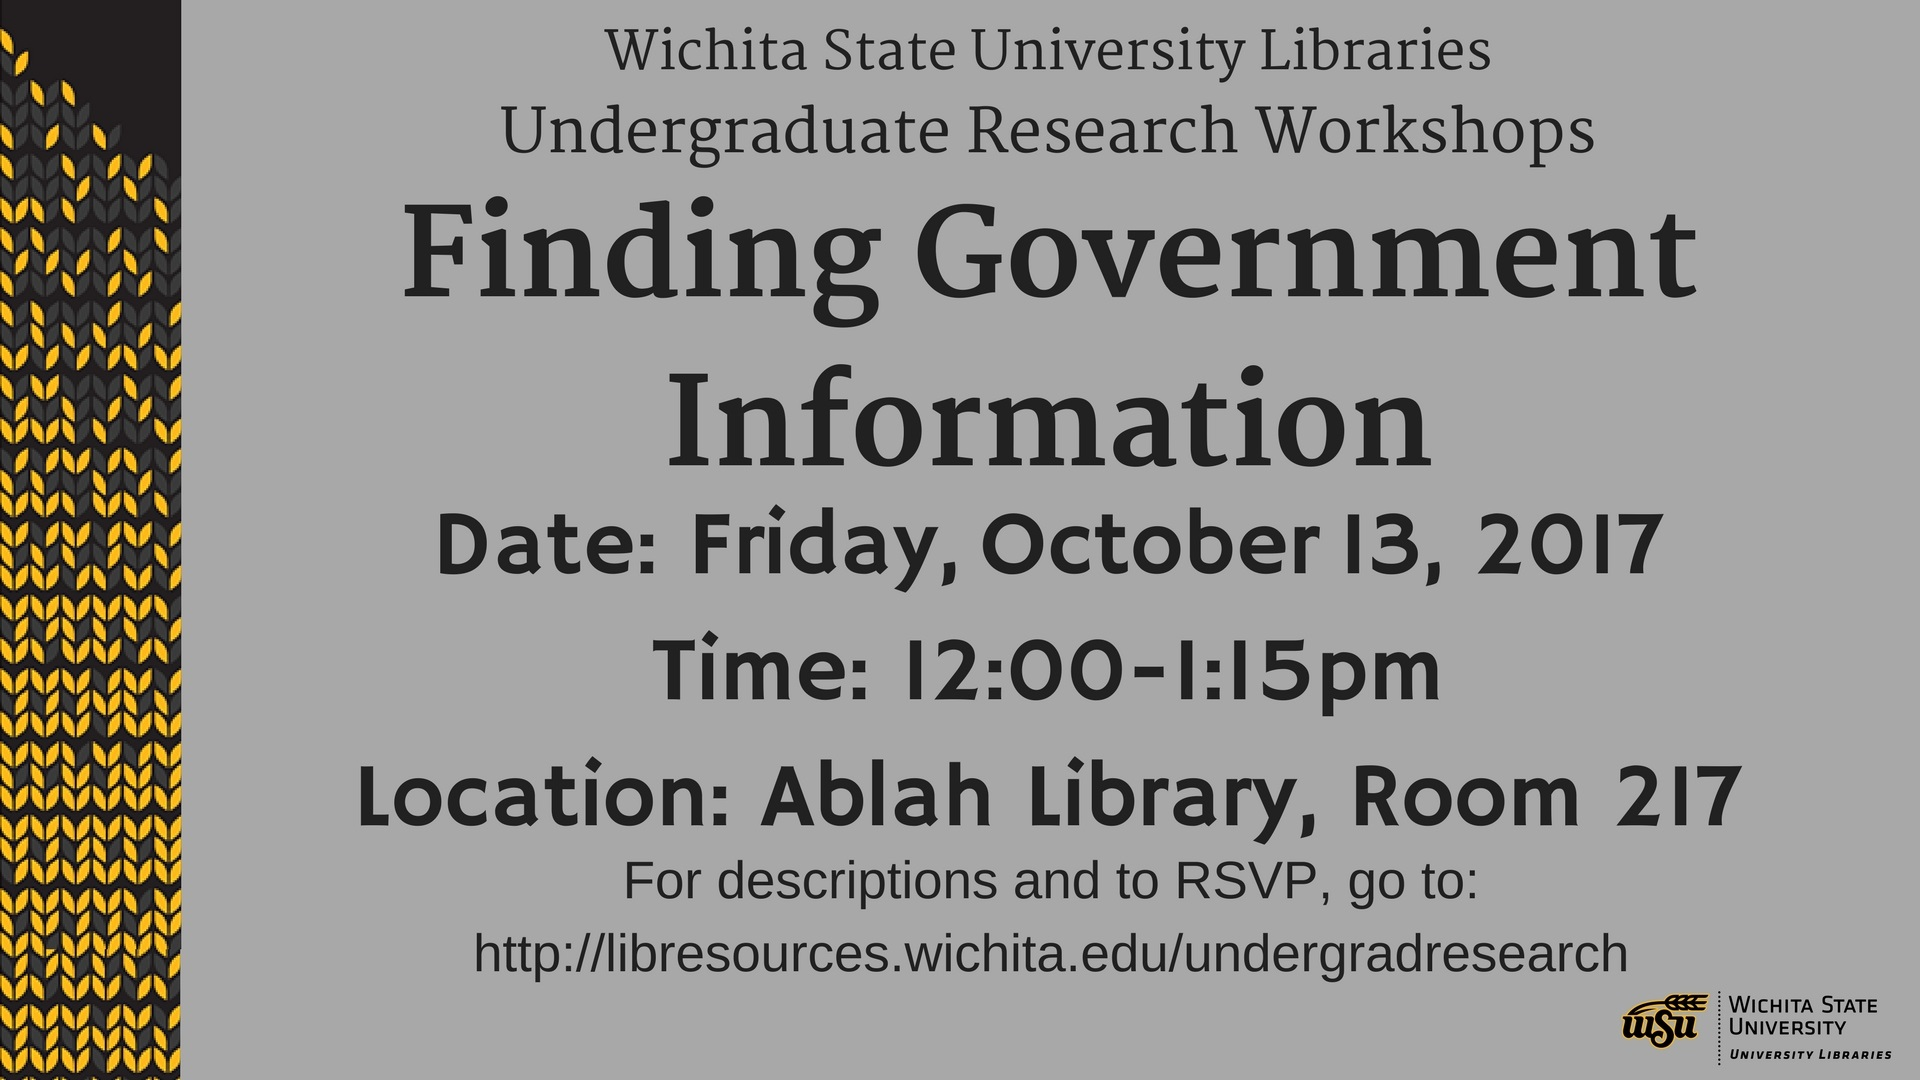 Finding Government Information workshop on October 13 from 12:00 to 1:15 p.m. in Ablah Library room 217.